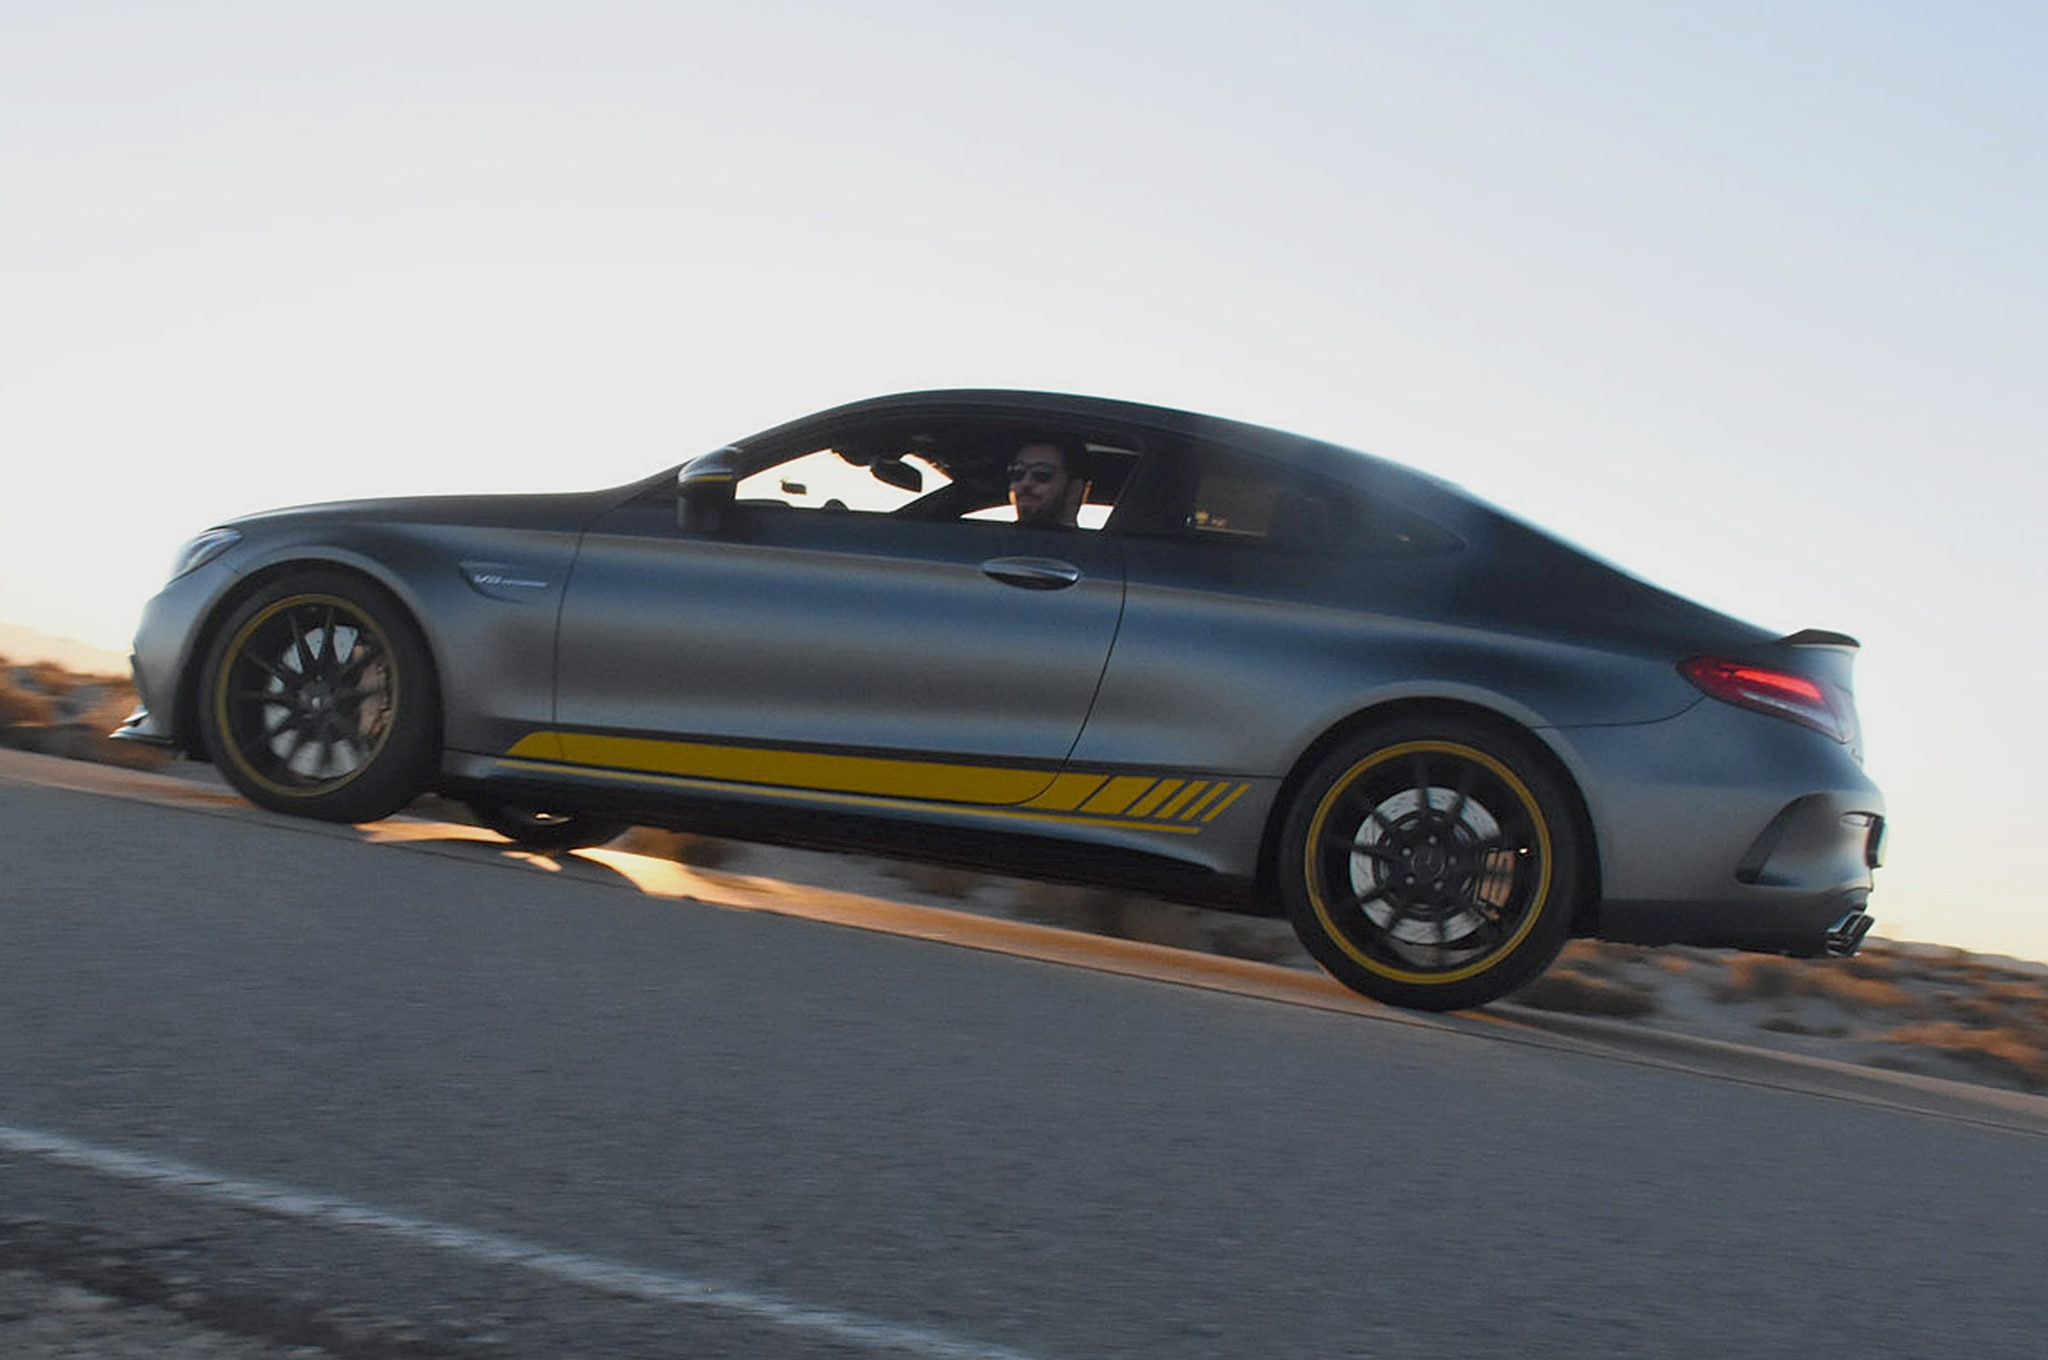 2017 Mercedes Benz C63 AMG S Coupe Is A Force Of Nature